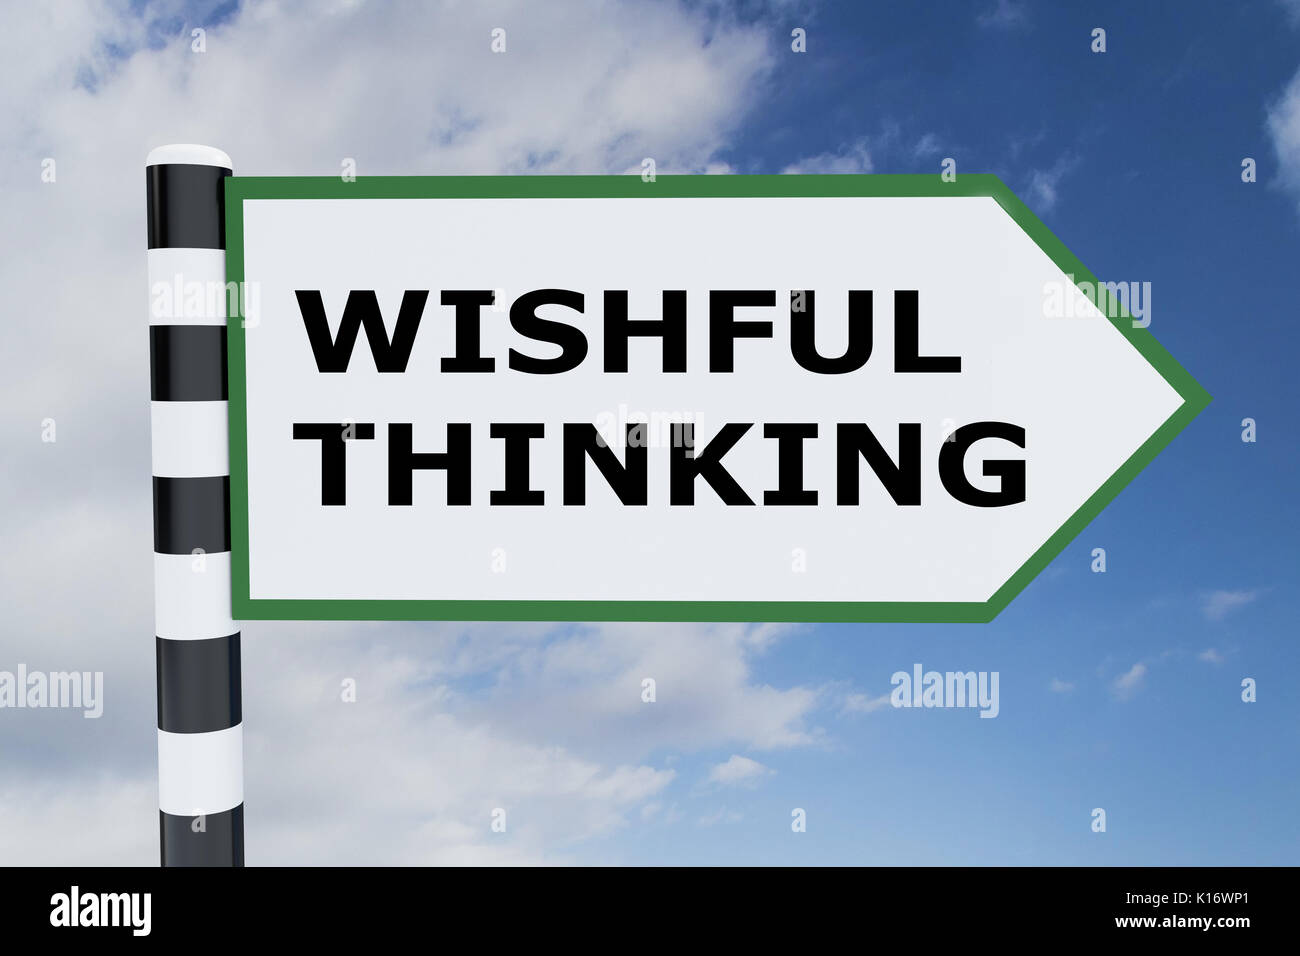 3D illustration of 'WISHFUL THINKING' script on road sign - Stock Image